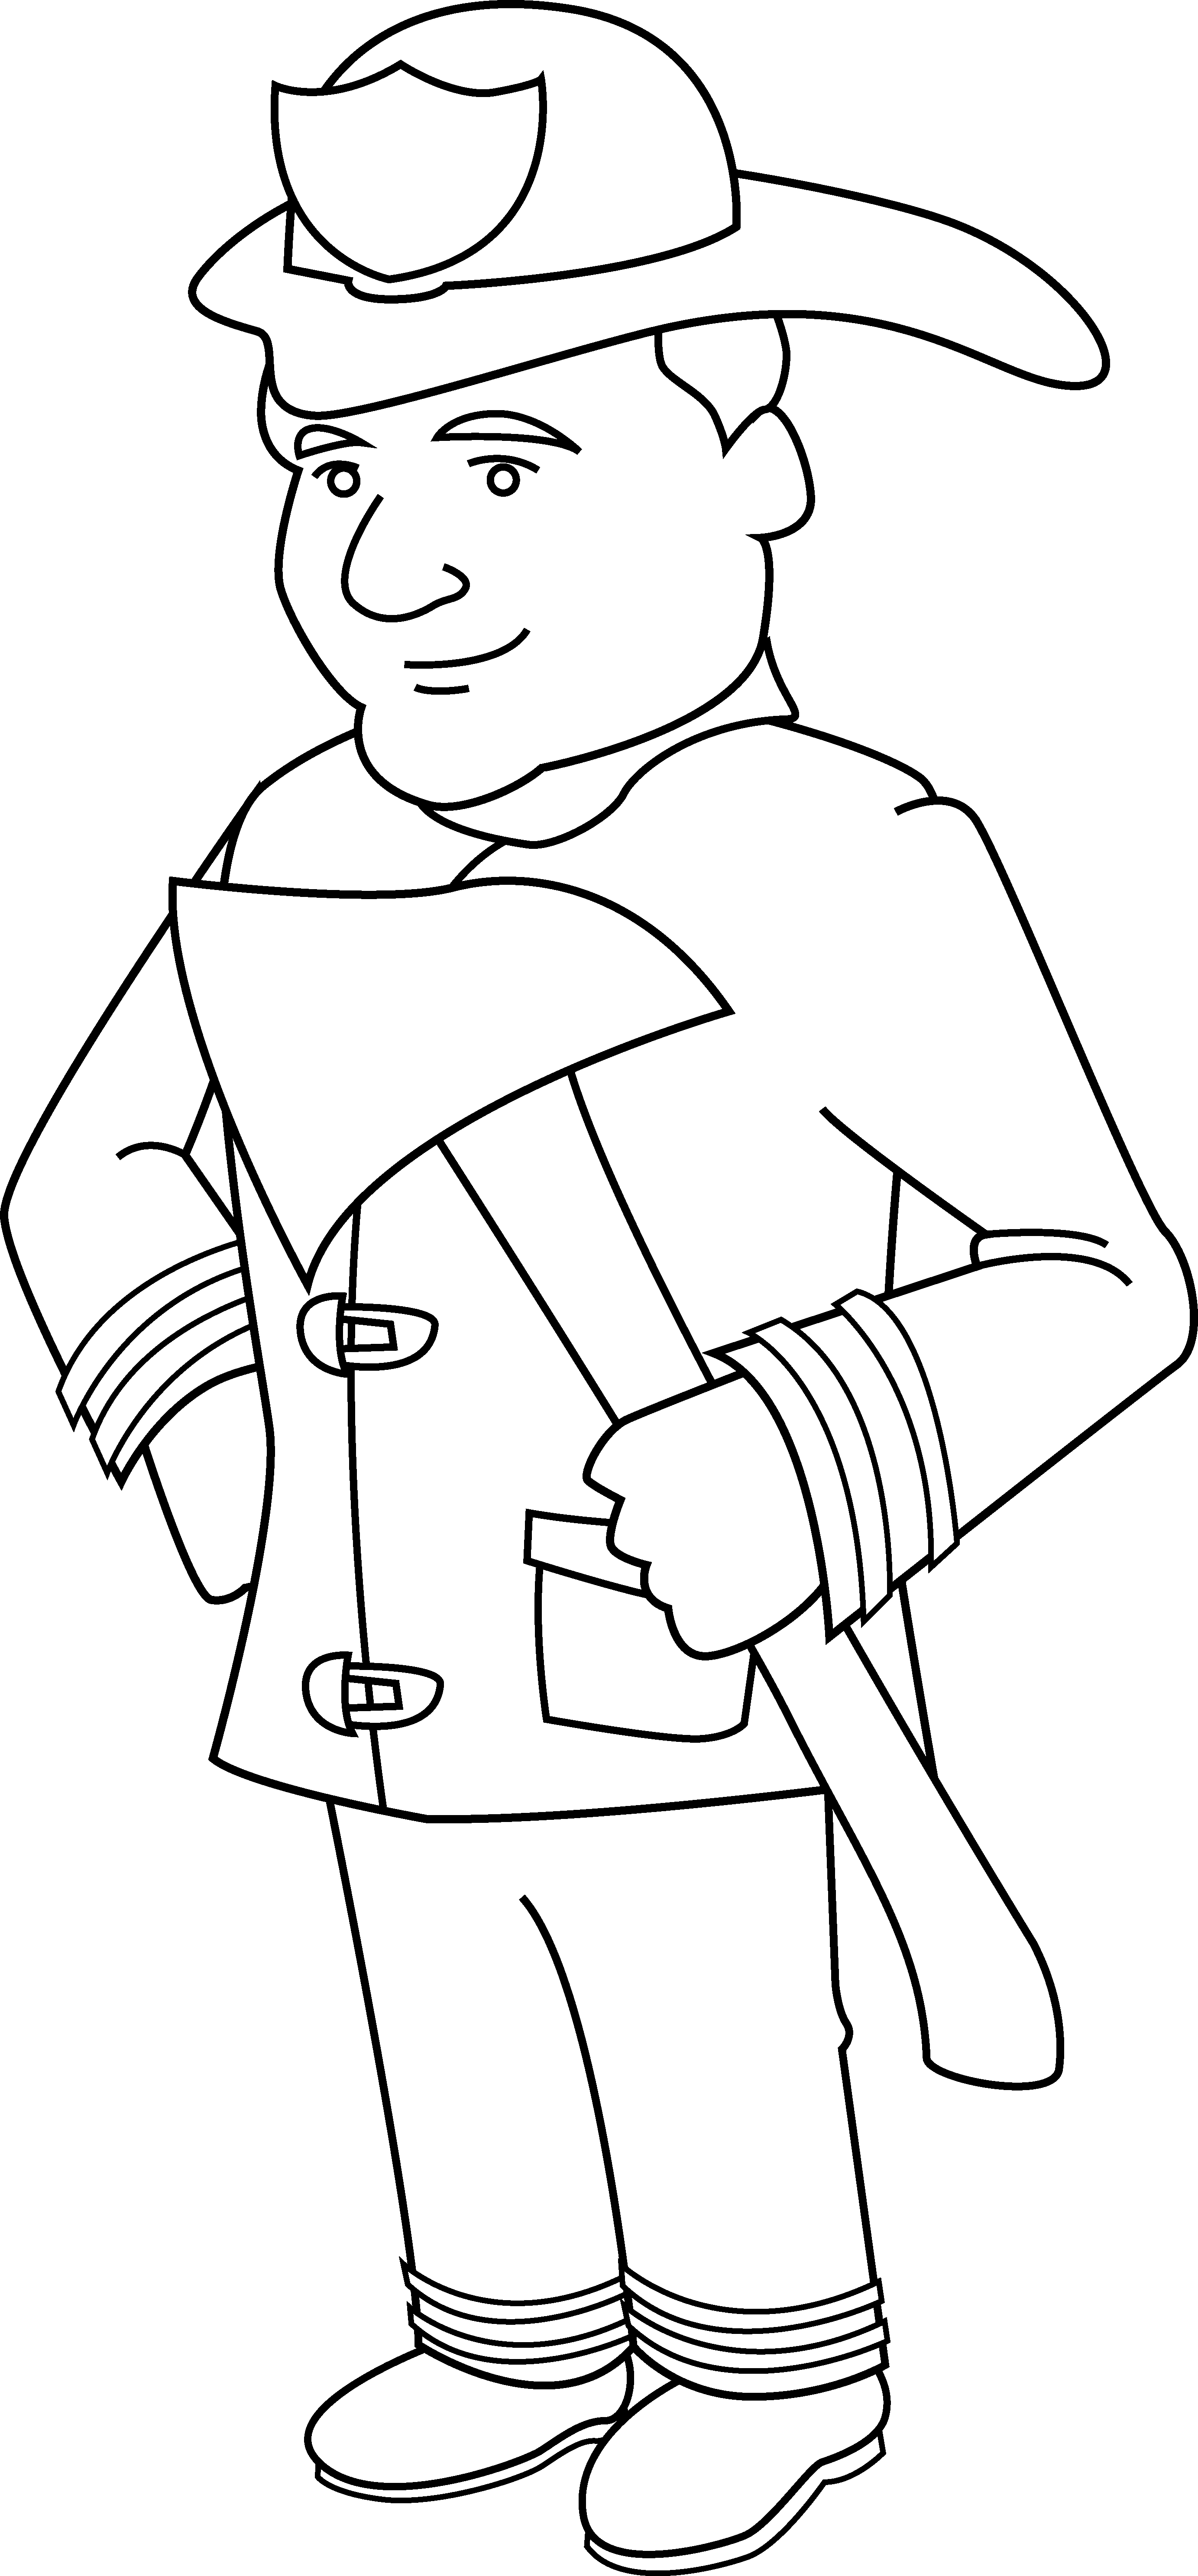 Coloring page free clip. Firefighter clipart male firefighter clip art transparent